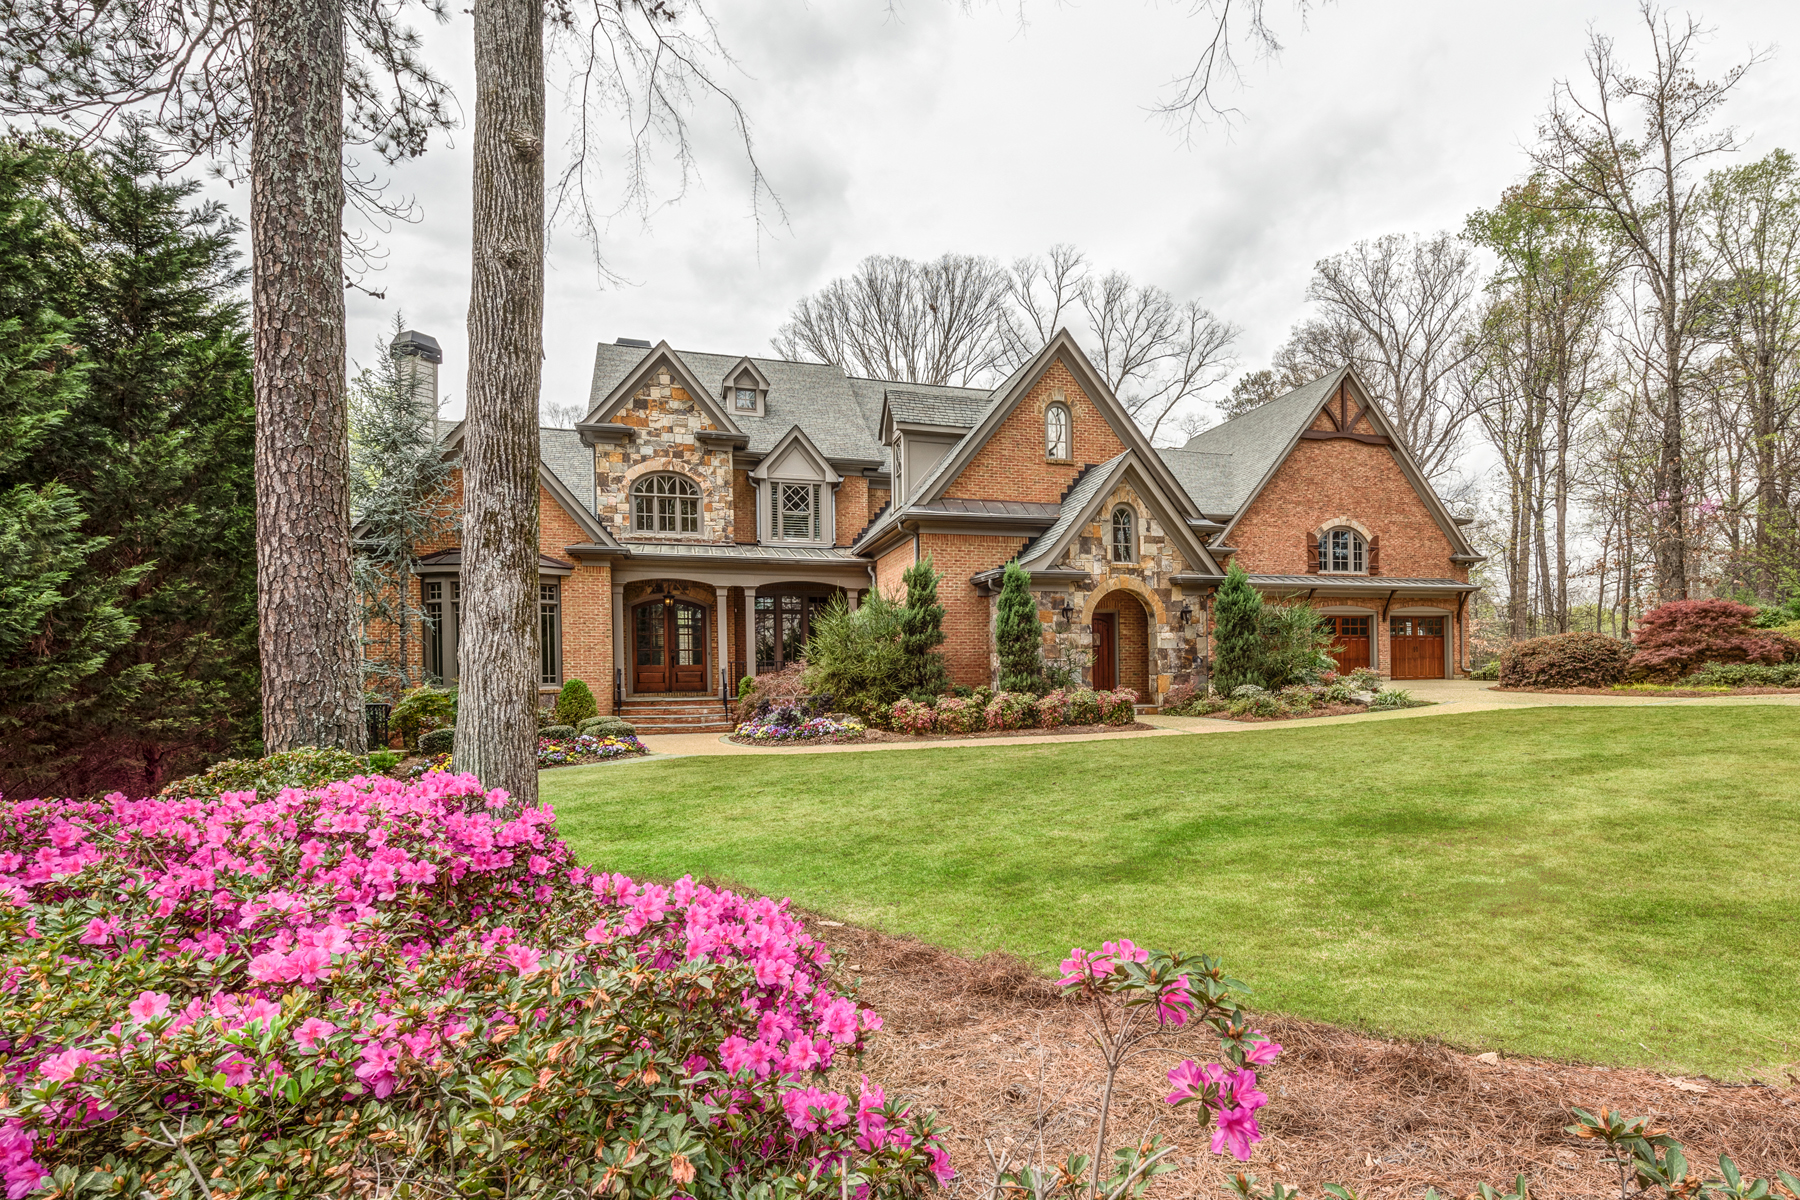 Single Family Home for Sale at Exclusive Buckhead Retreat 280 Old Ivy Road Buckhead, Atlanta, Georgia, 30342 United States